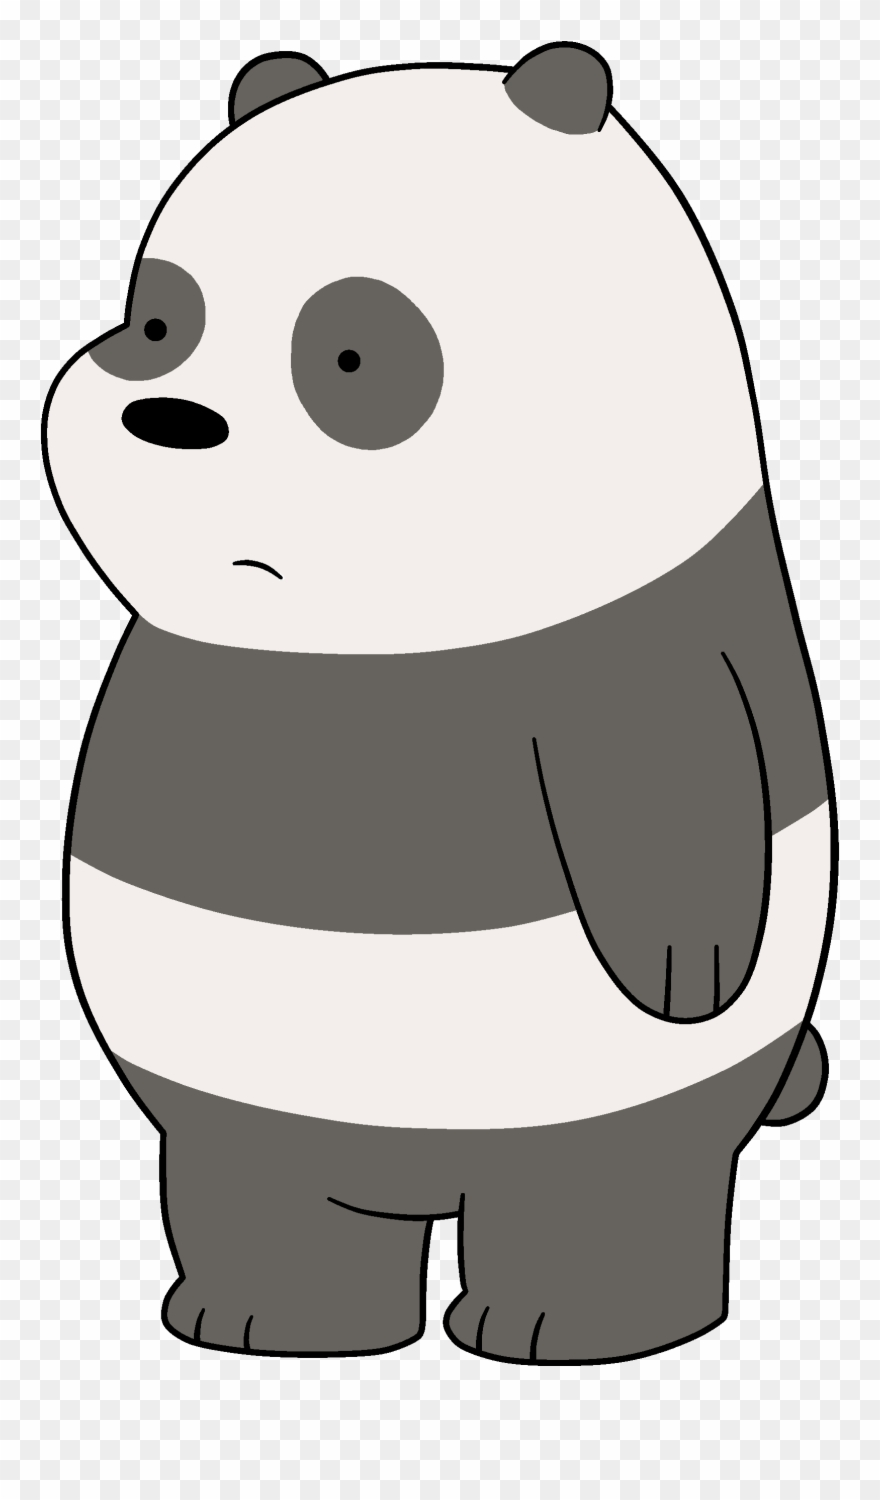 Cartoon Network Clipart Panda.